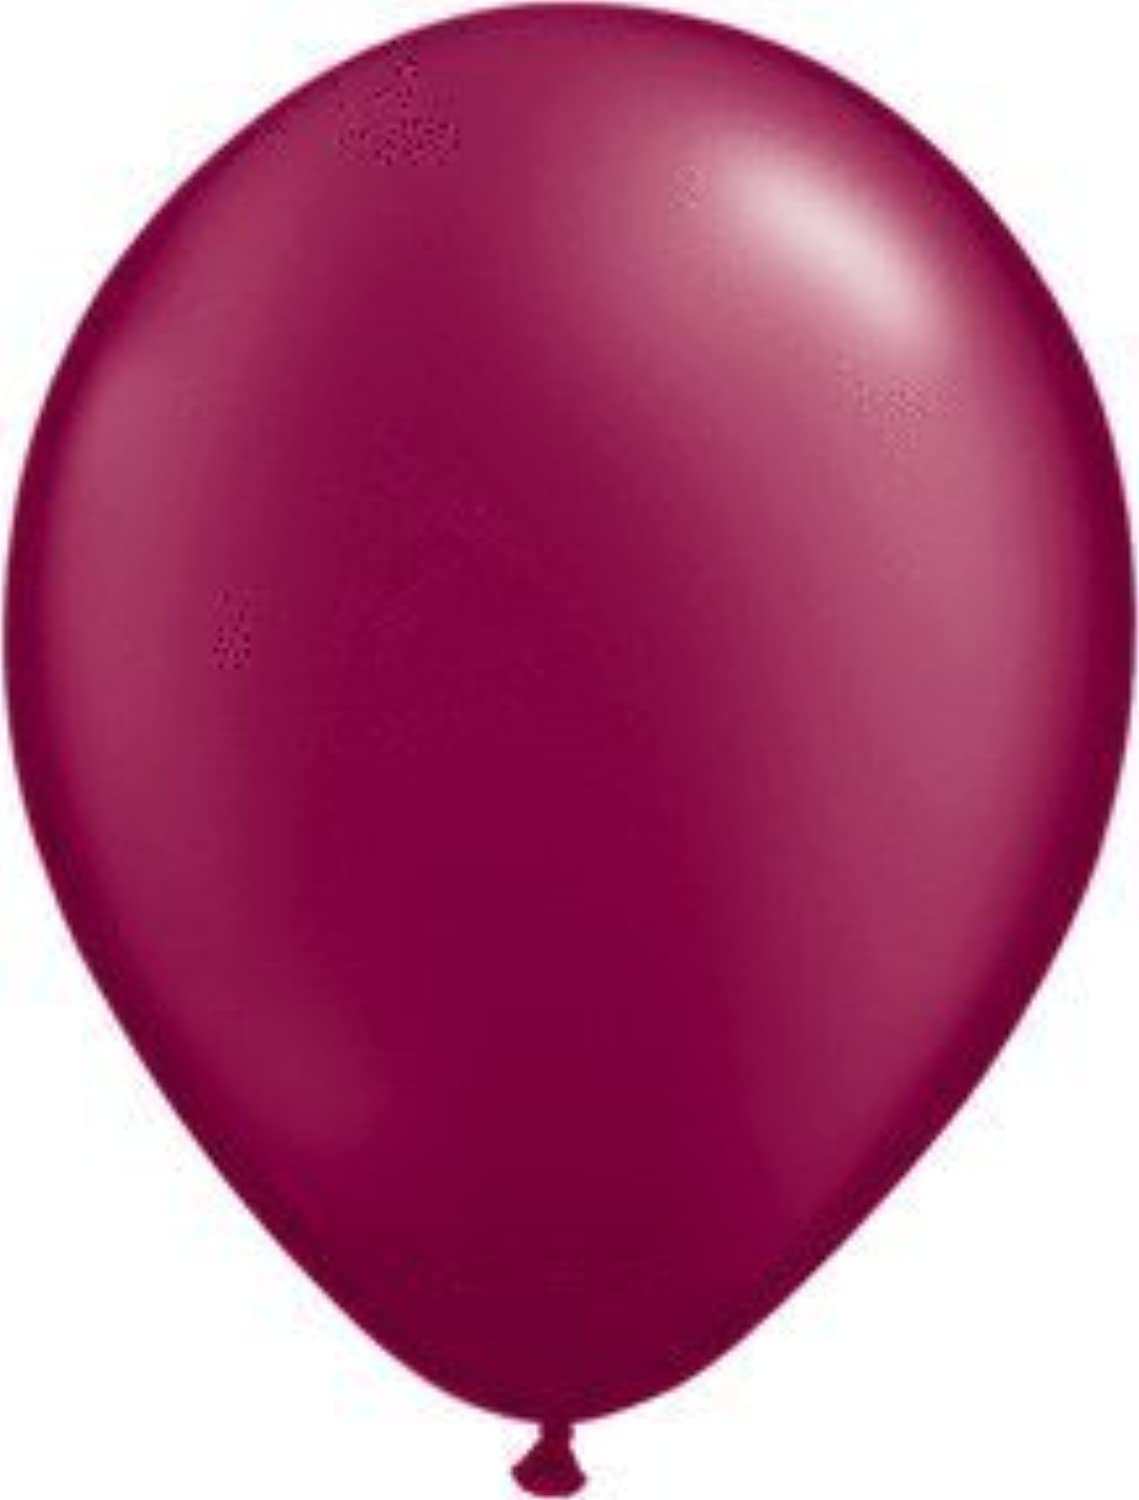 Qualatex 5 Round Balloons  Pearlized  Pack of 100 (Burgundy Pearl) by Mayflower Products